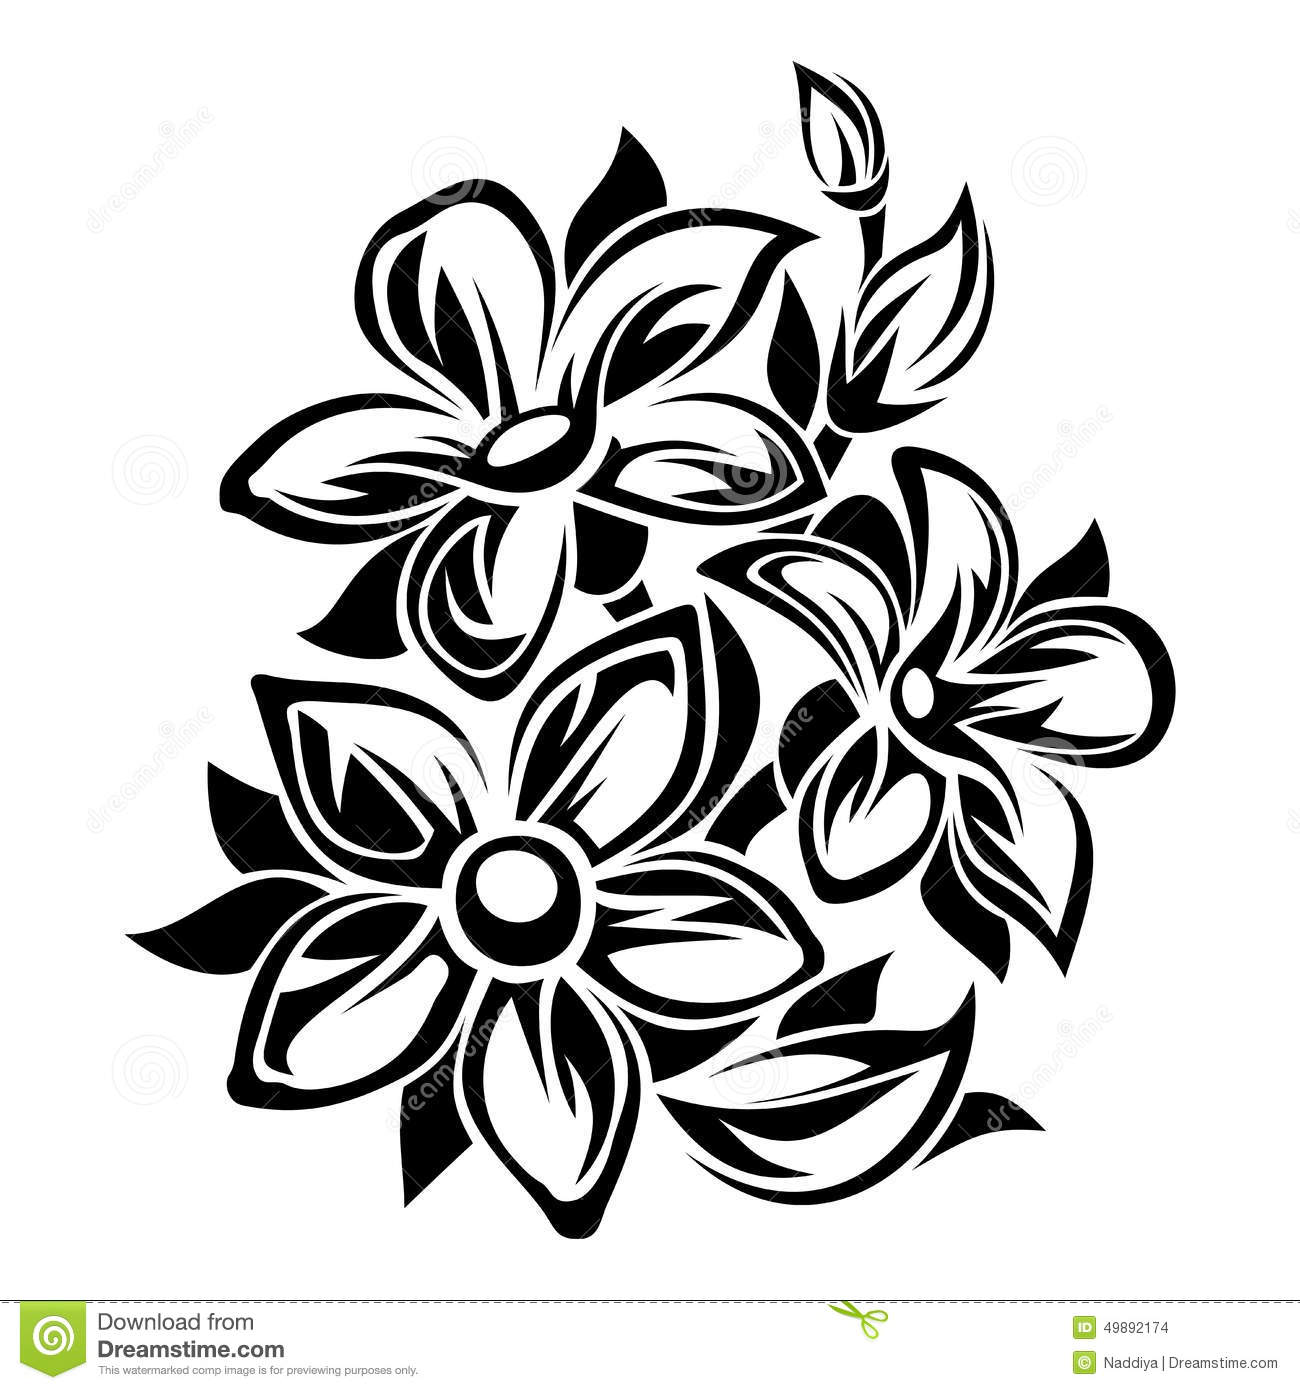 Flowers black and white ornament vector illustration illustration flowers black and white ornament vector illustration illustration 49892174 megapixl mightylinksfo